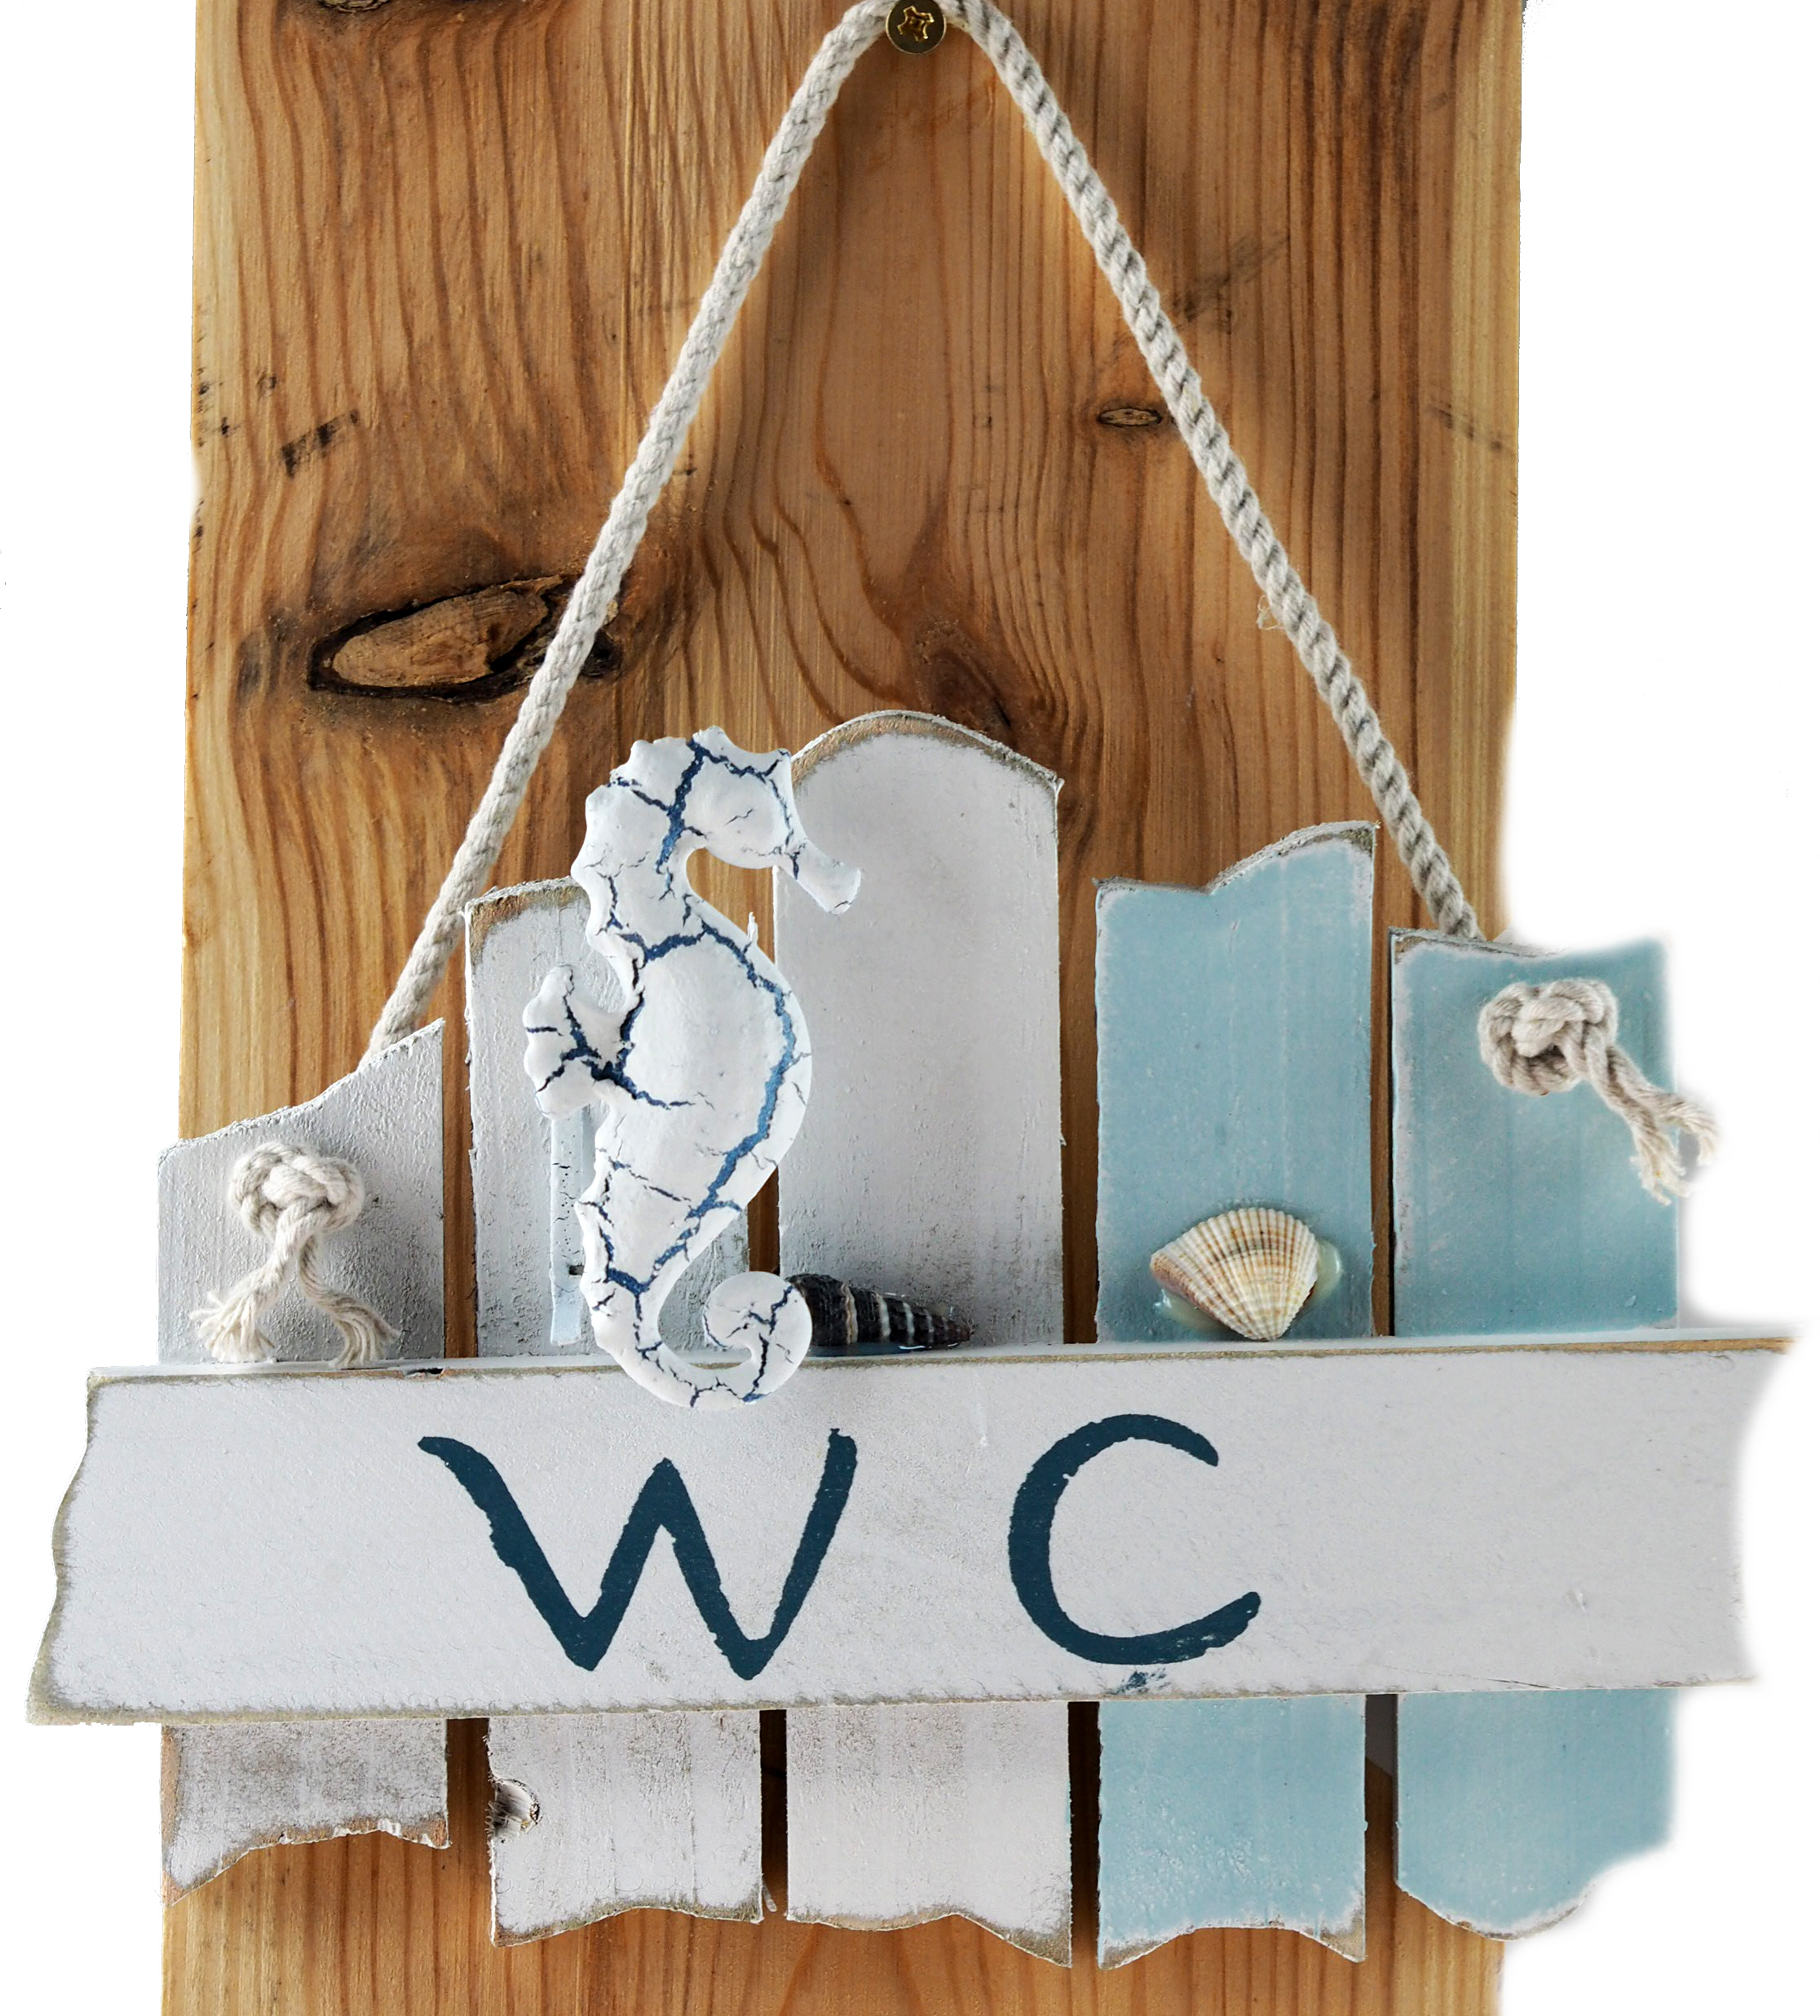 CHIC SHABBY DRIFTWOOD THE BATHROOM WC TOILET LOO NAUTICAL THEME CRAB DOOR  SIGN.